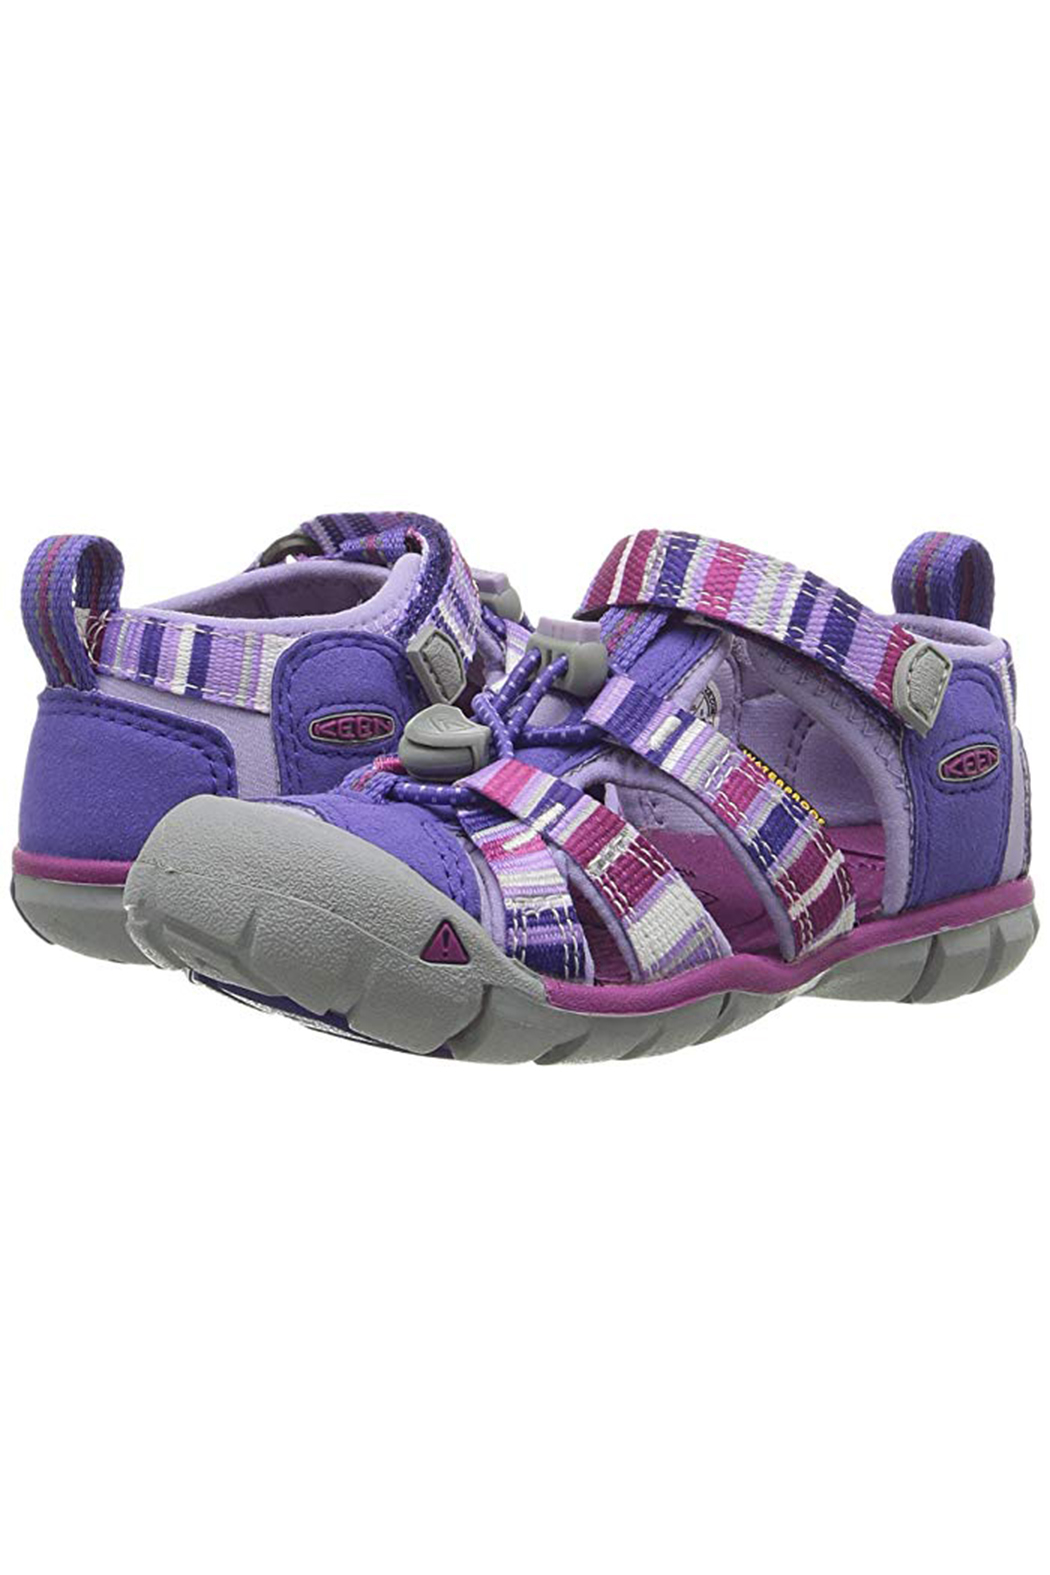 Keen Seacamp II CNX Sandal Children/Youth - Main Image